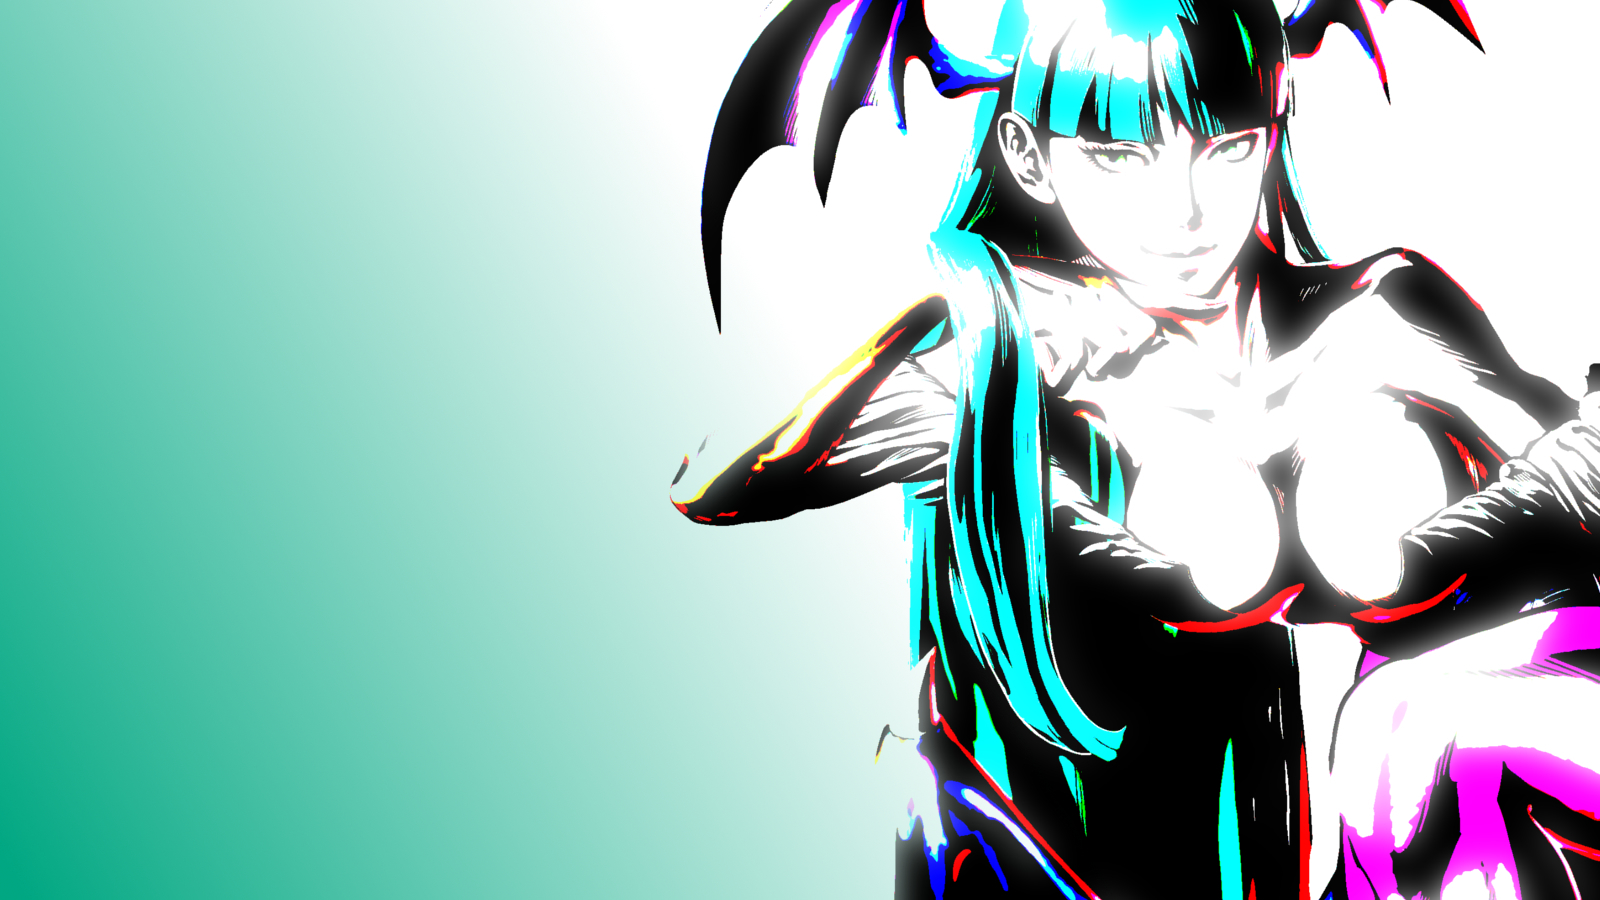 Darkstalkers Morrigan Aensland HD Wallpaper